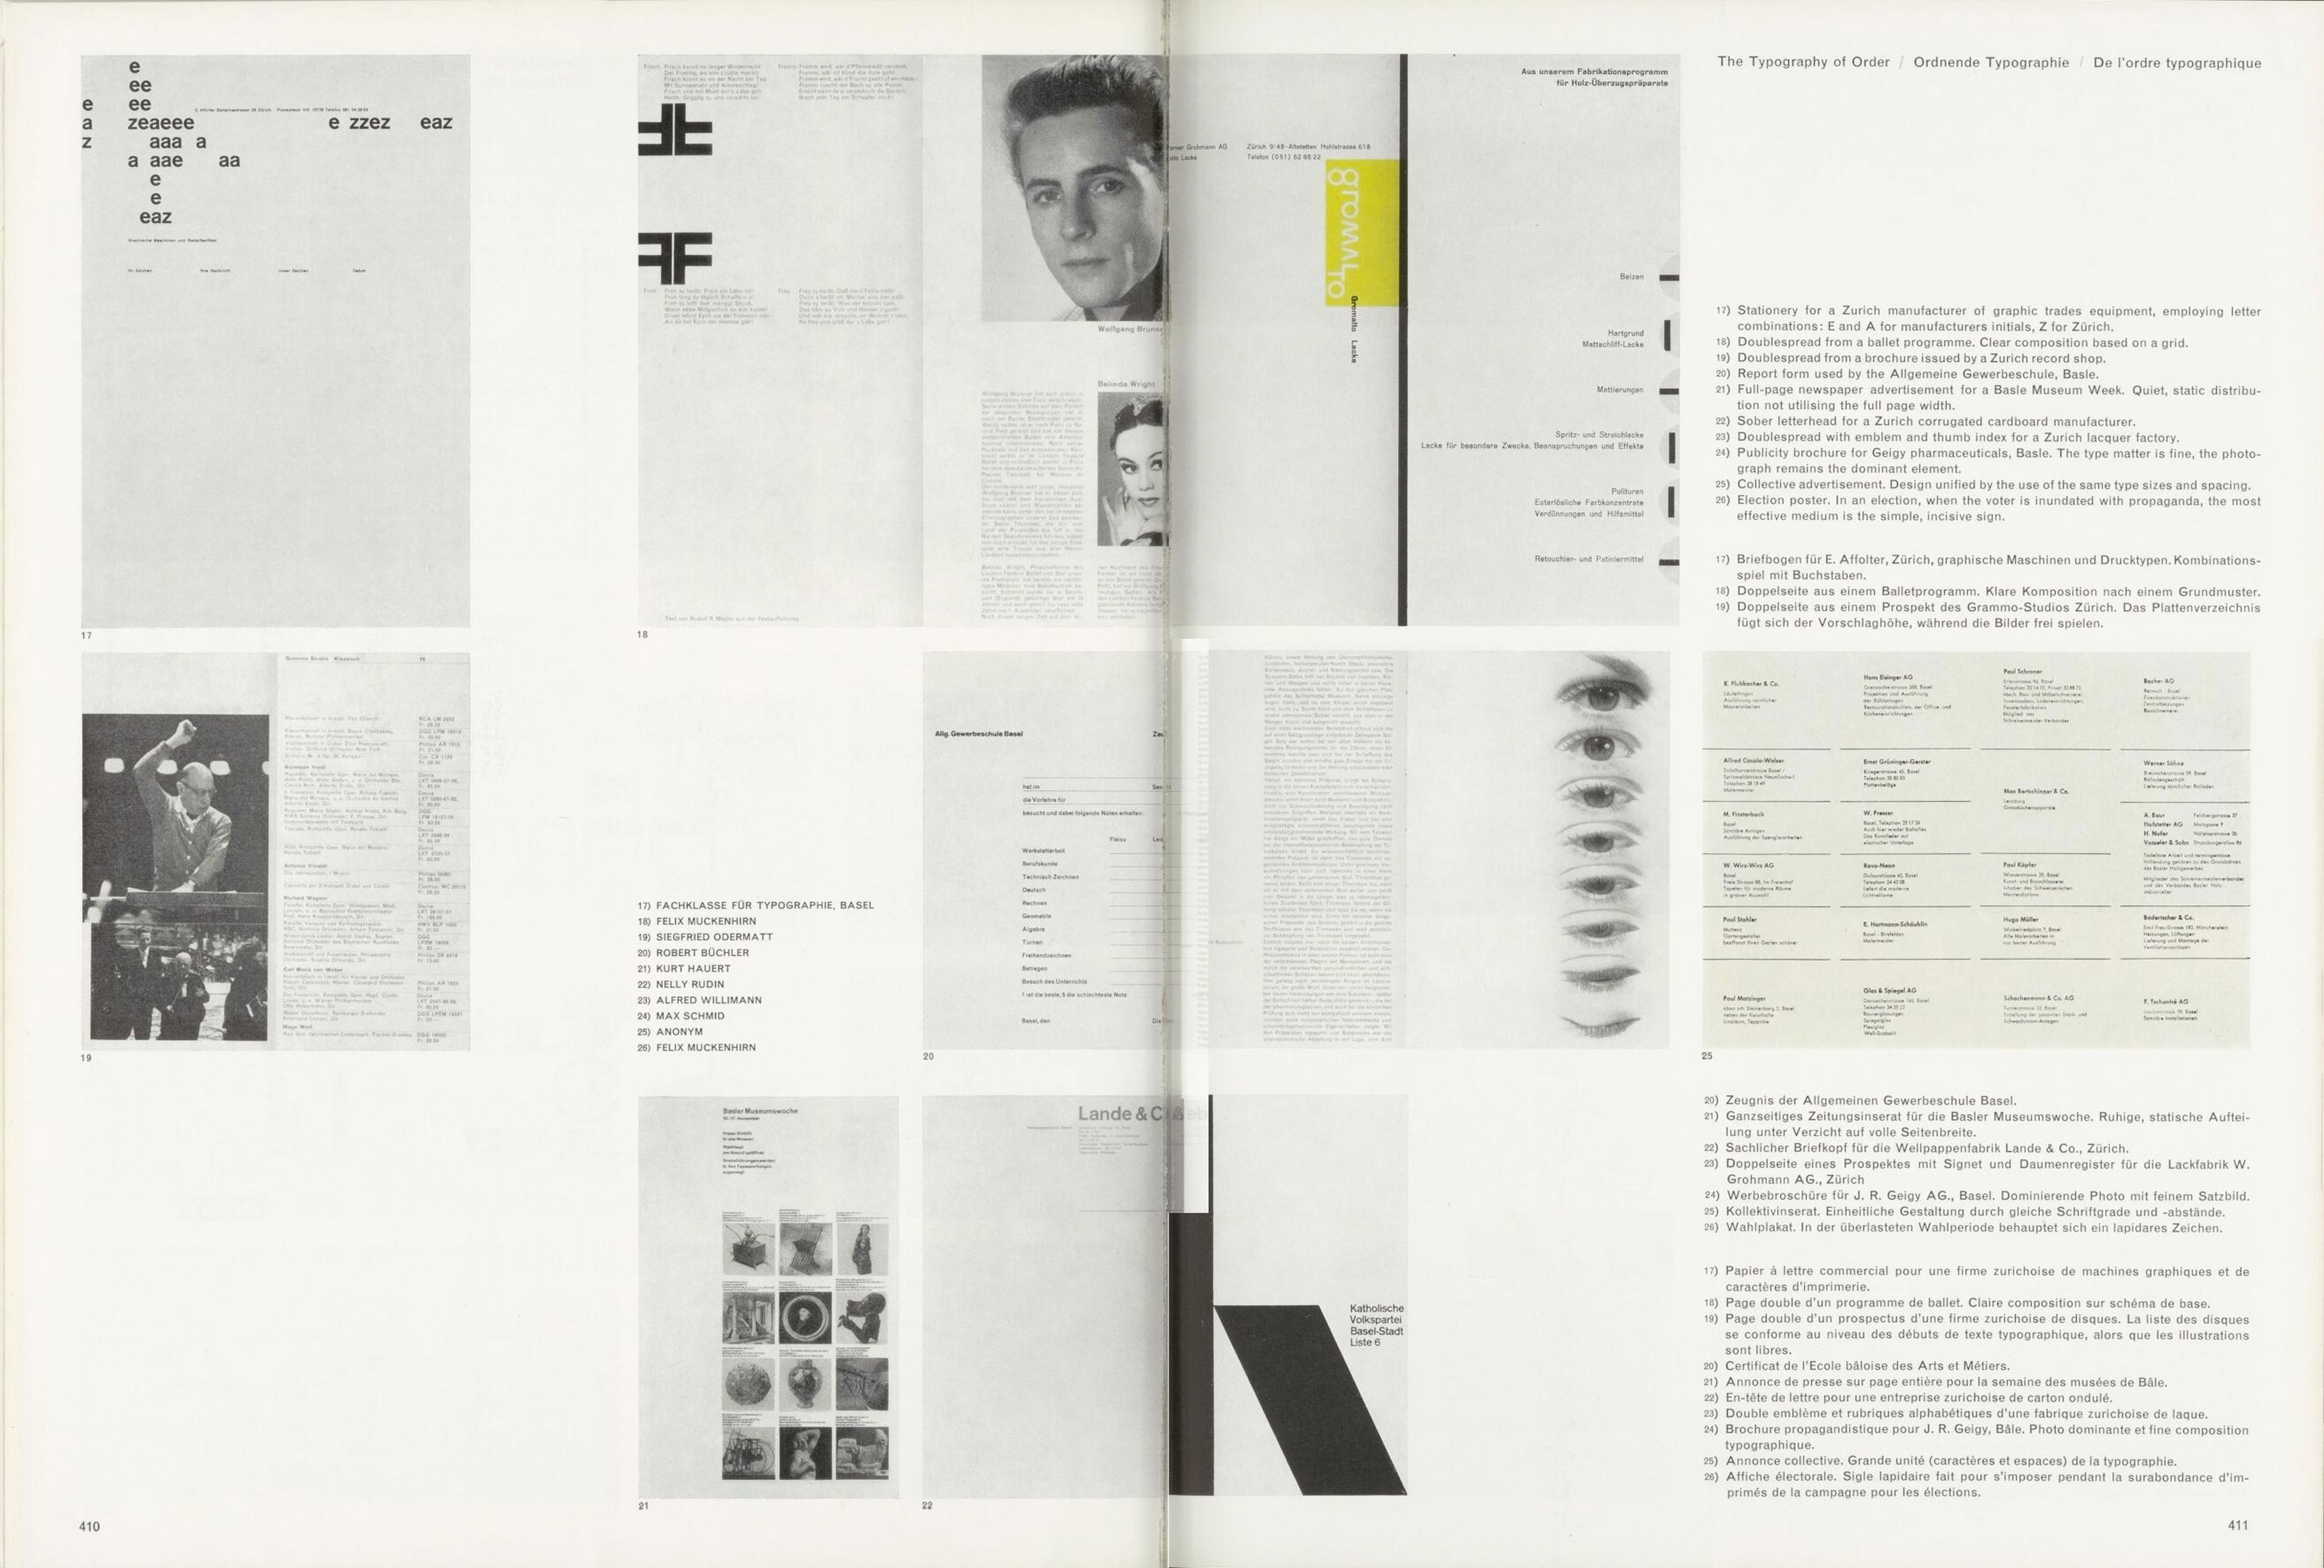 De-l-ordre-typographique-emil-ruder-index-grafik-double-graphis-02